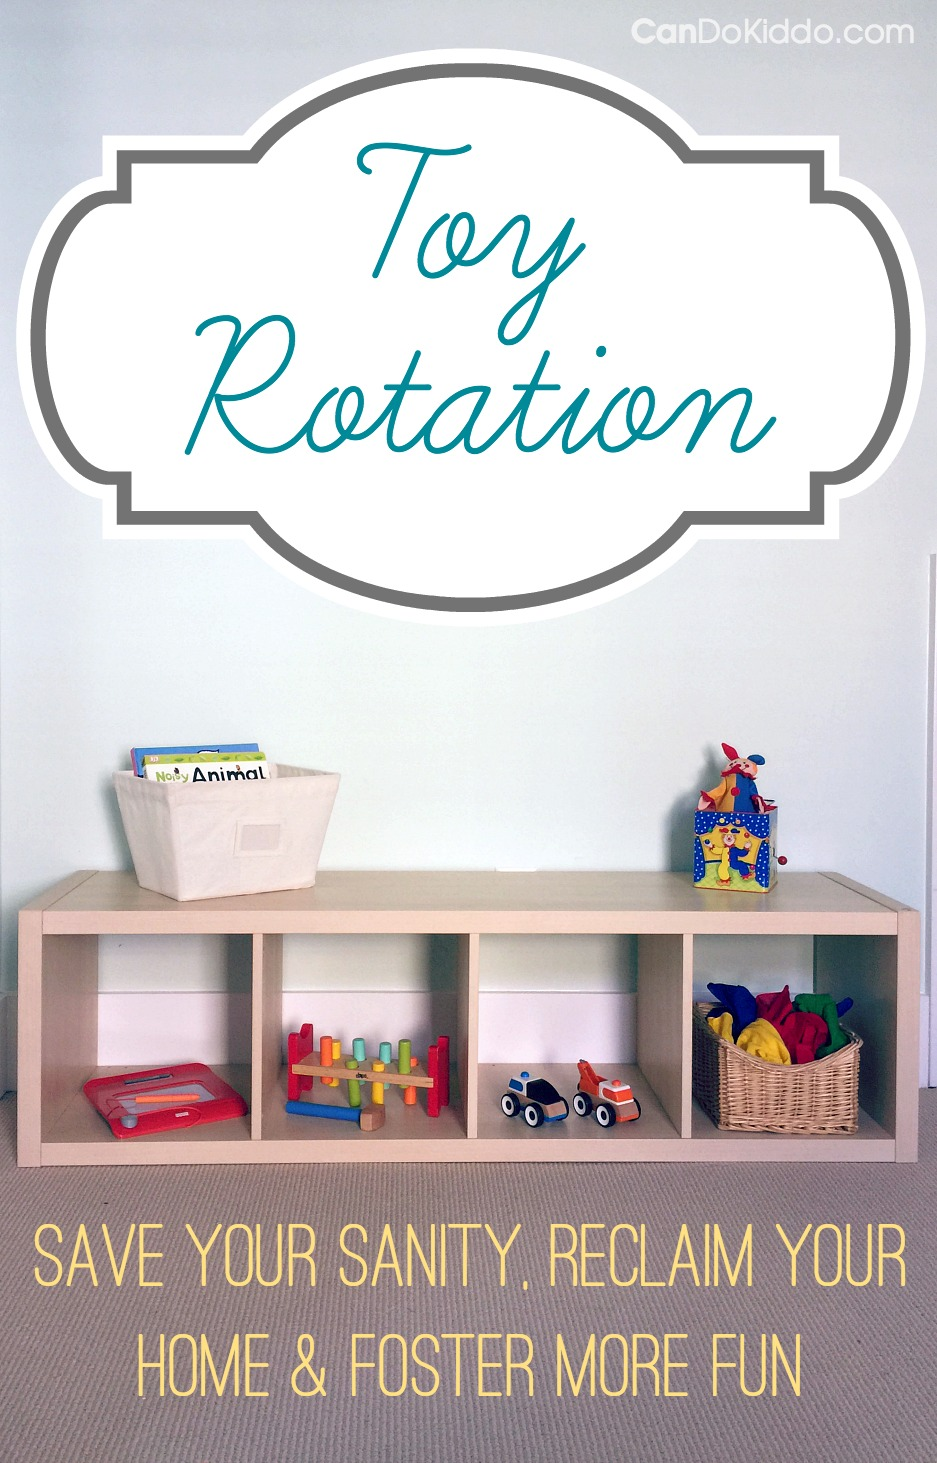 Toy rotation - Simple steps to save your sanity and foster more fun with less stuff. CanDo Kiddo